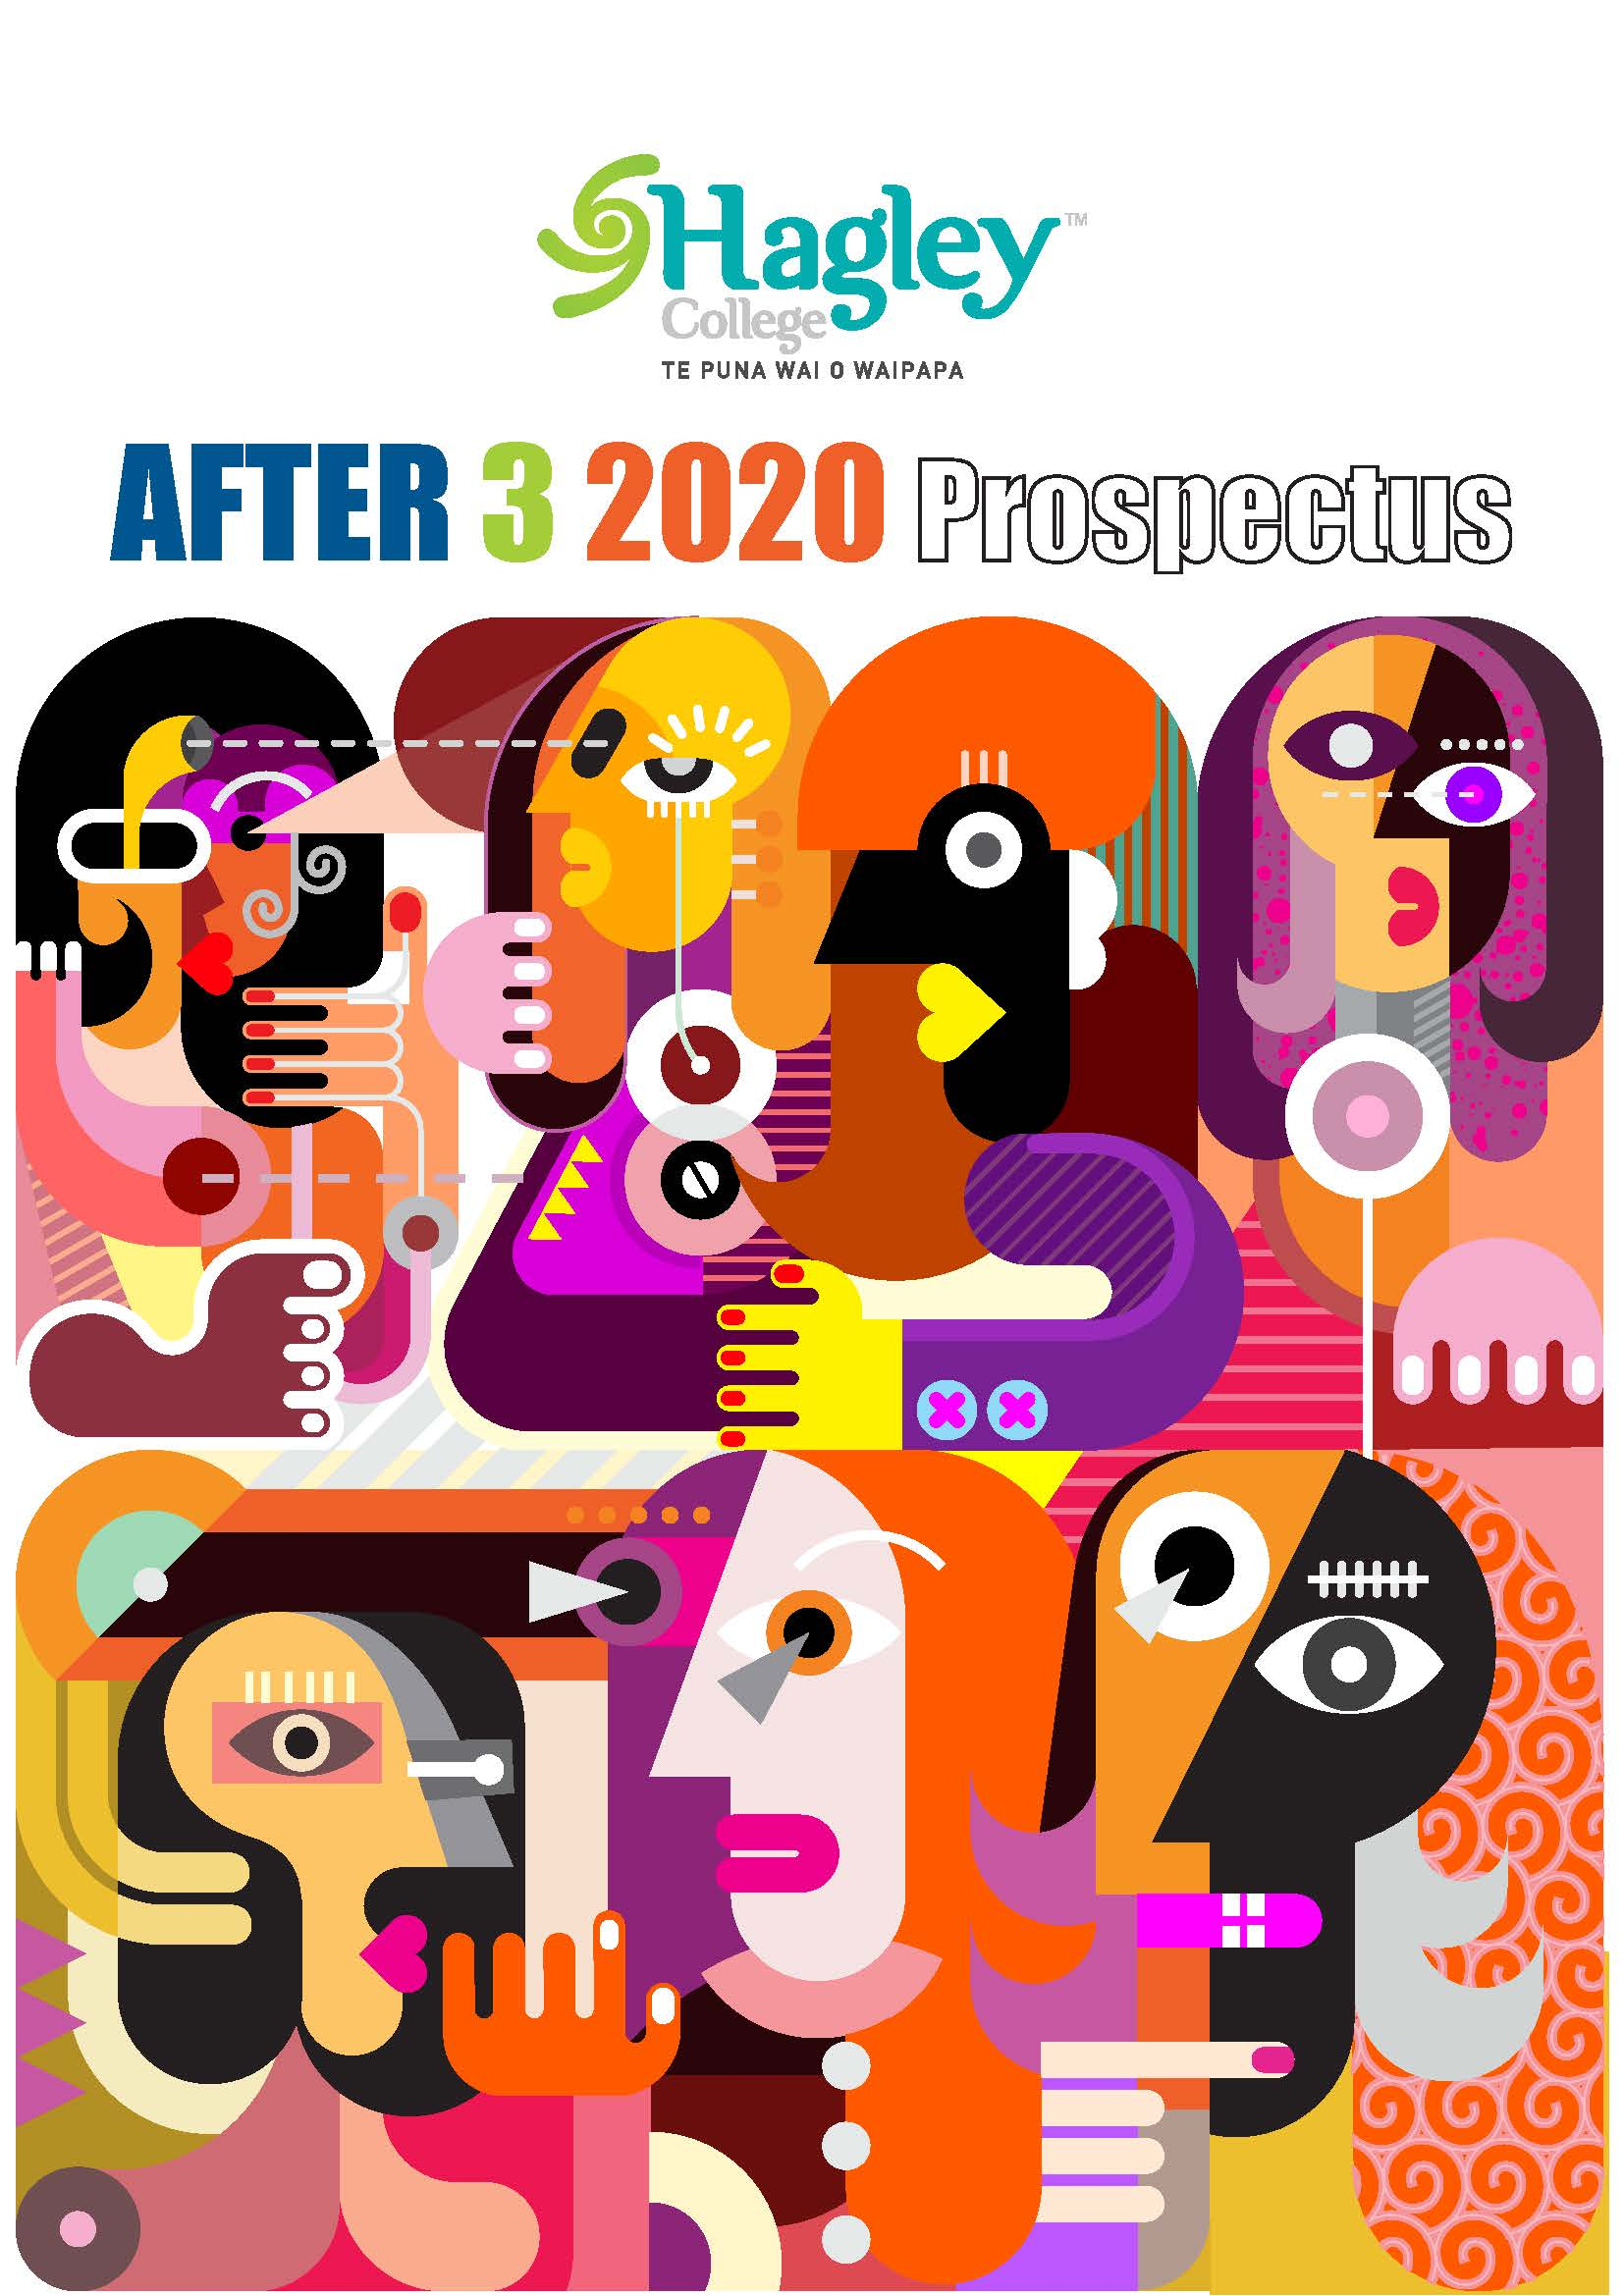 After 3 Prospectus 2020